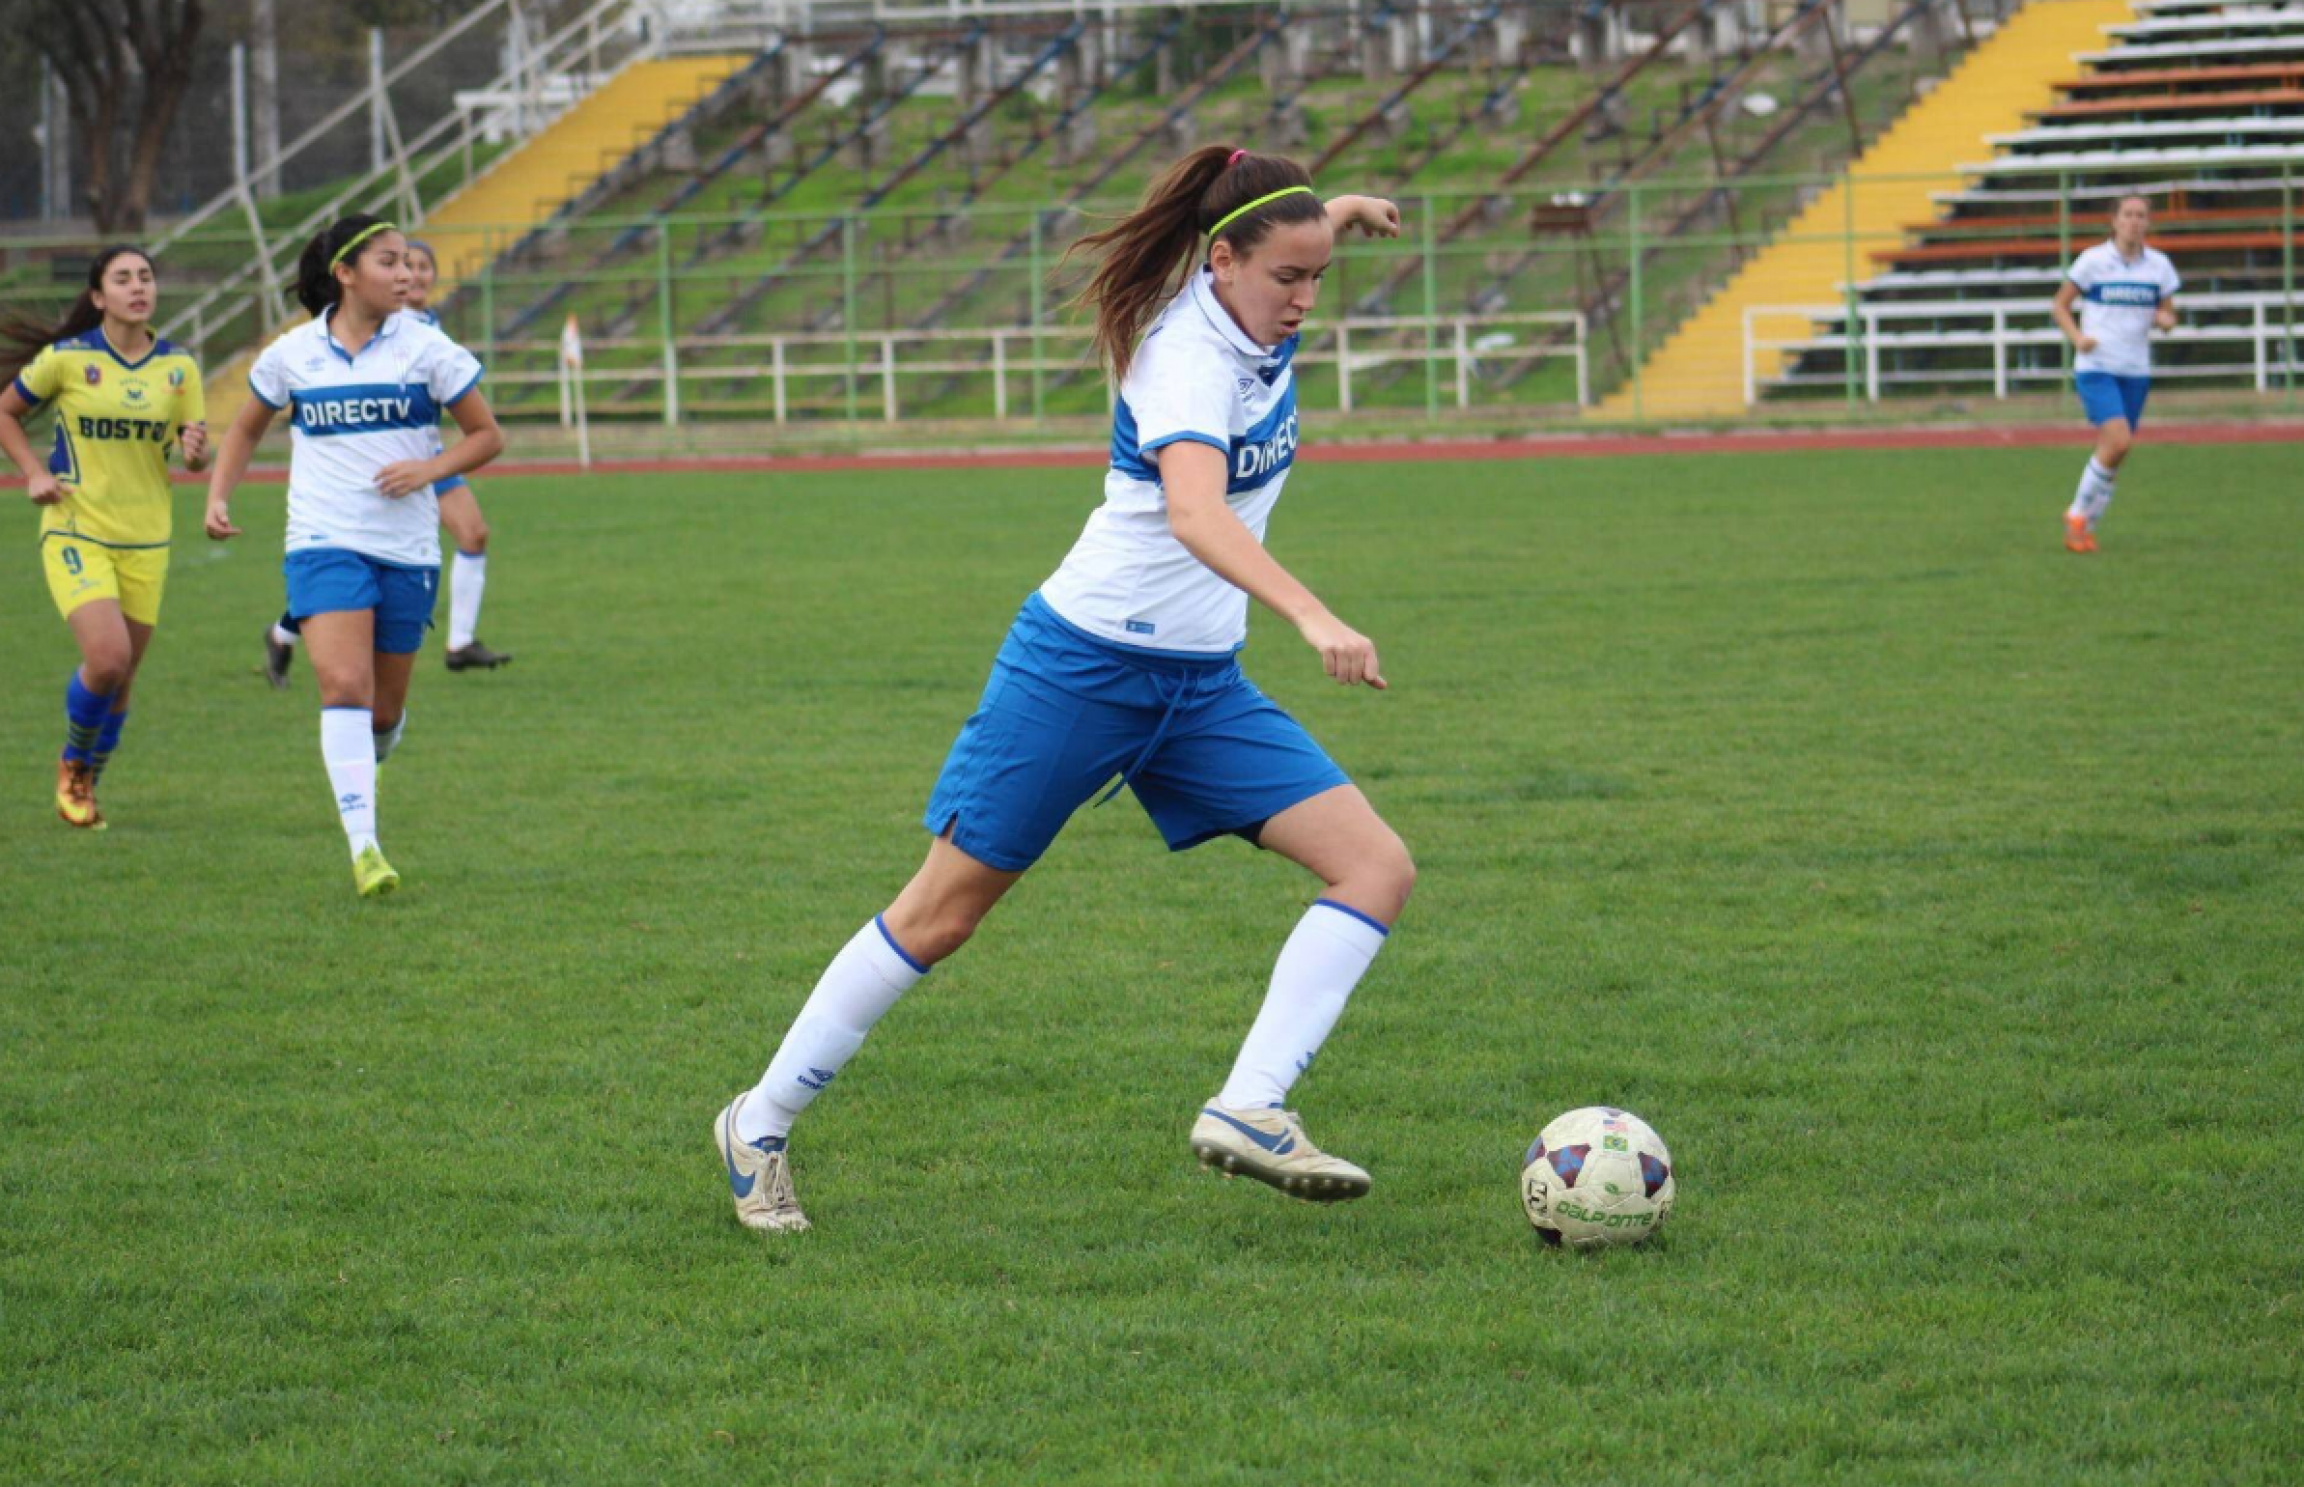 A woman wears a blue and white uniform and kicks a soccer ball.